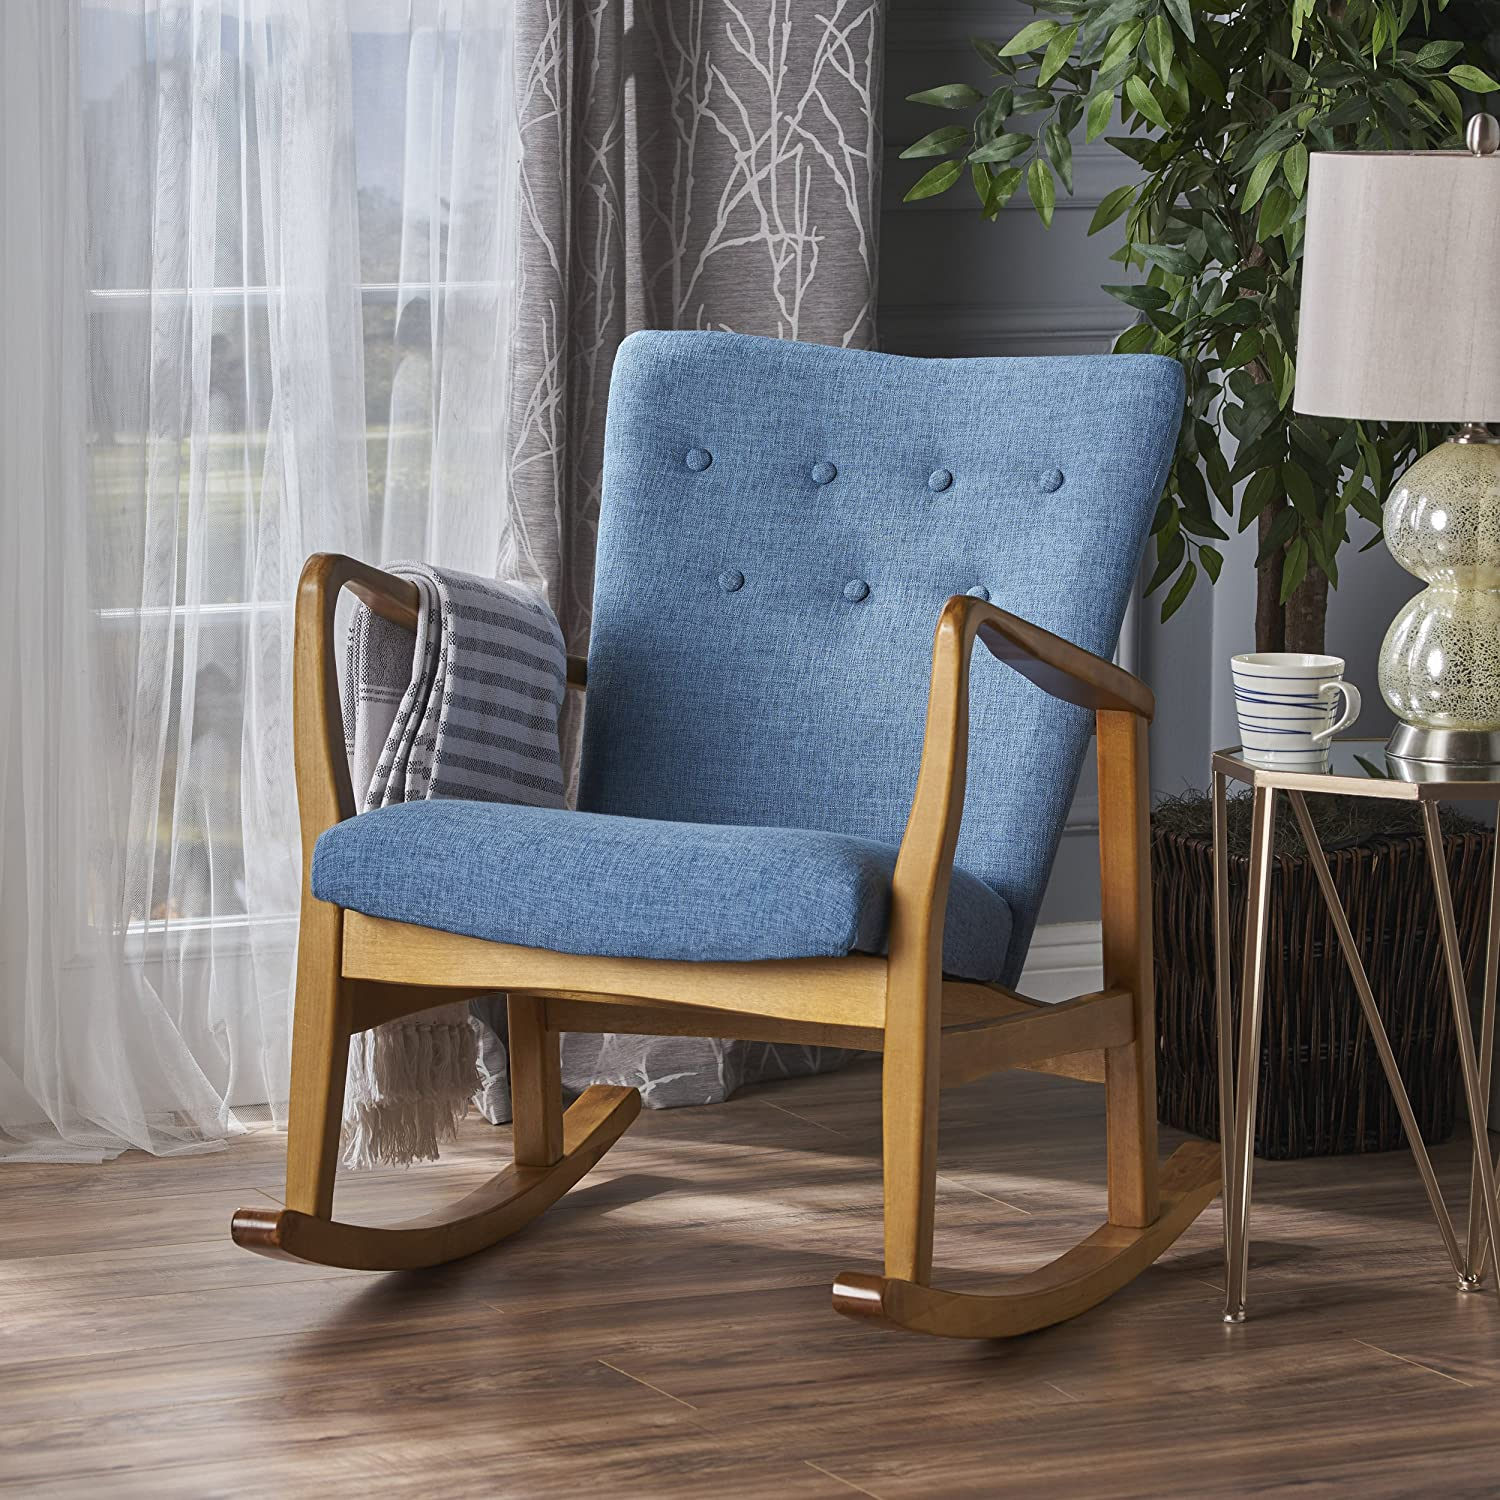 Christopher Knight Home 301994 Collin Mid Century Fabric Rocking Chair, Muted Blue, Light Walnut